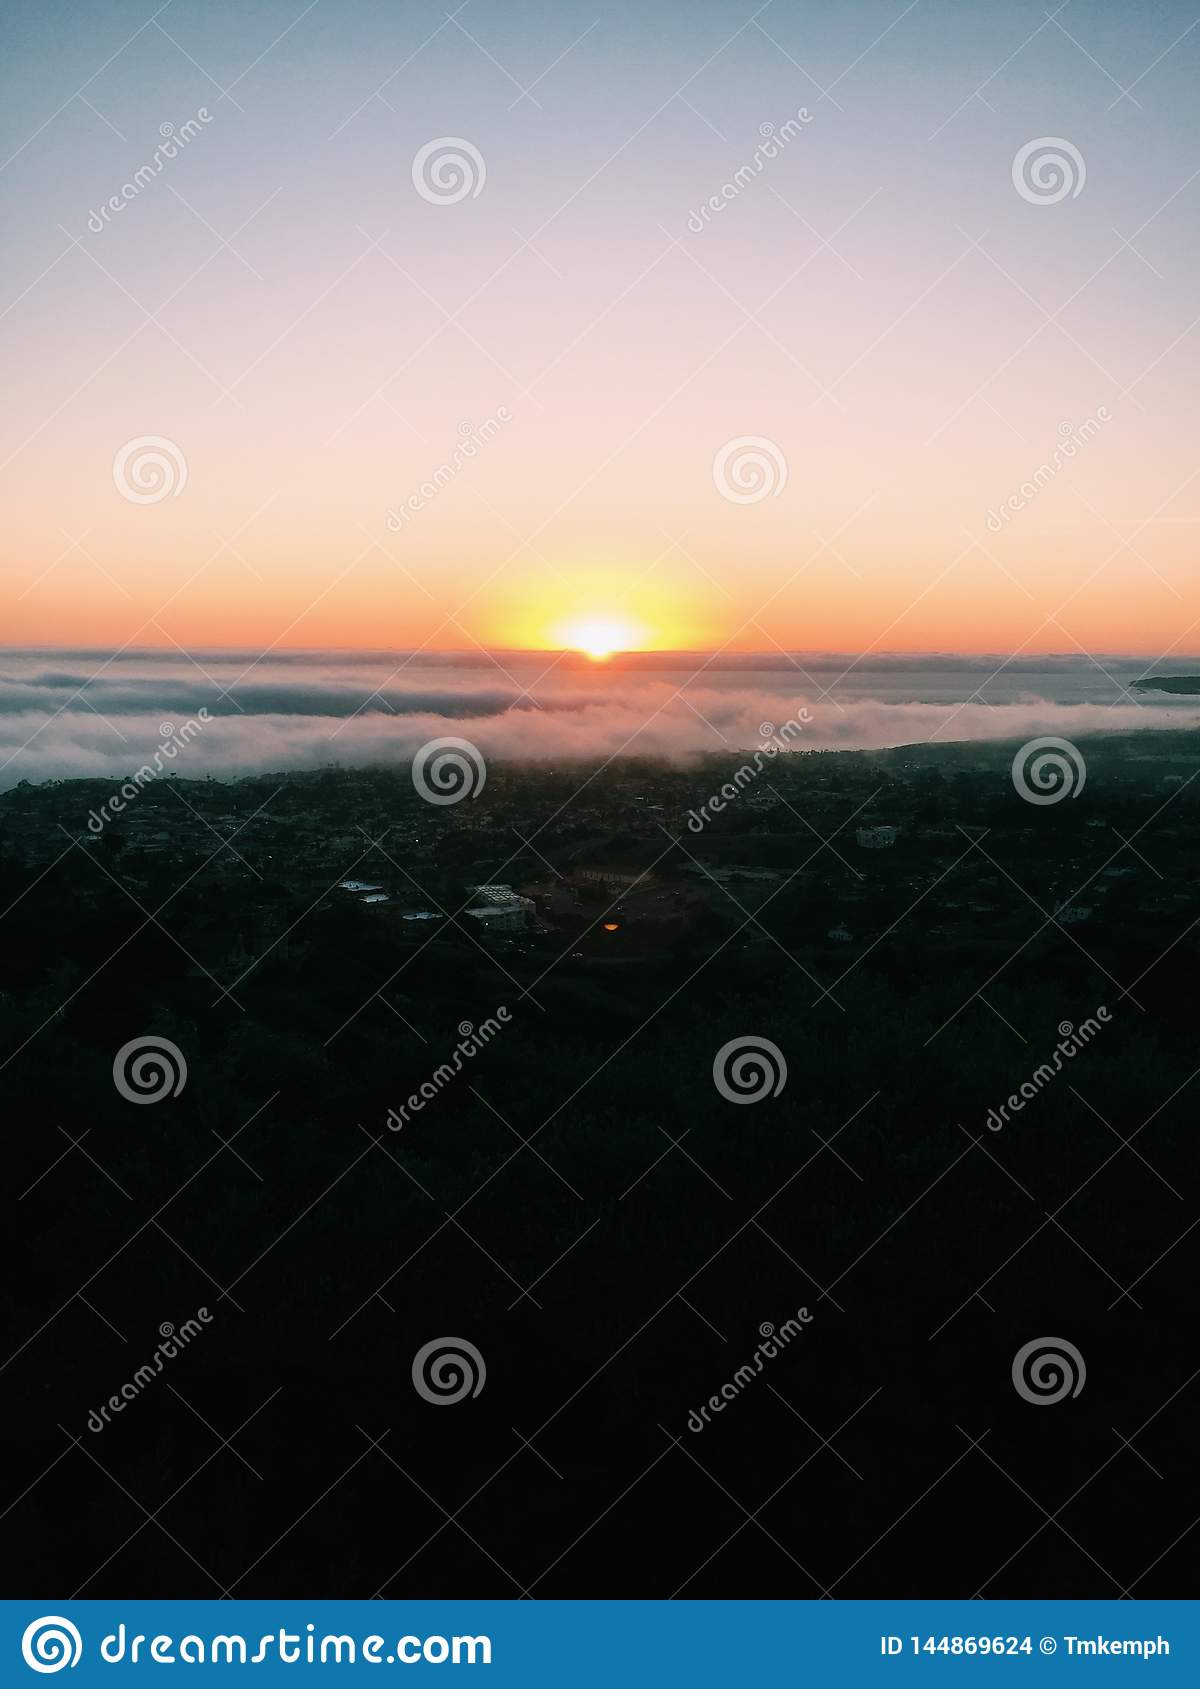 Sun setting behind a layer of clouds